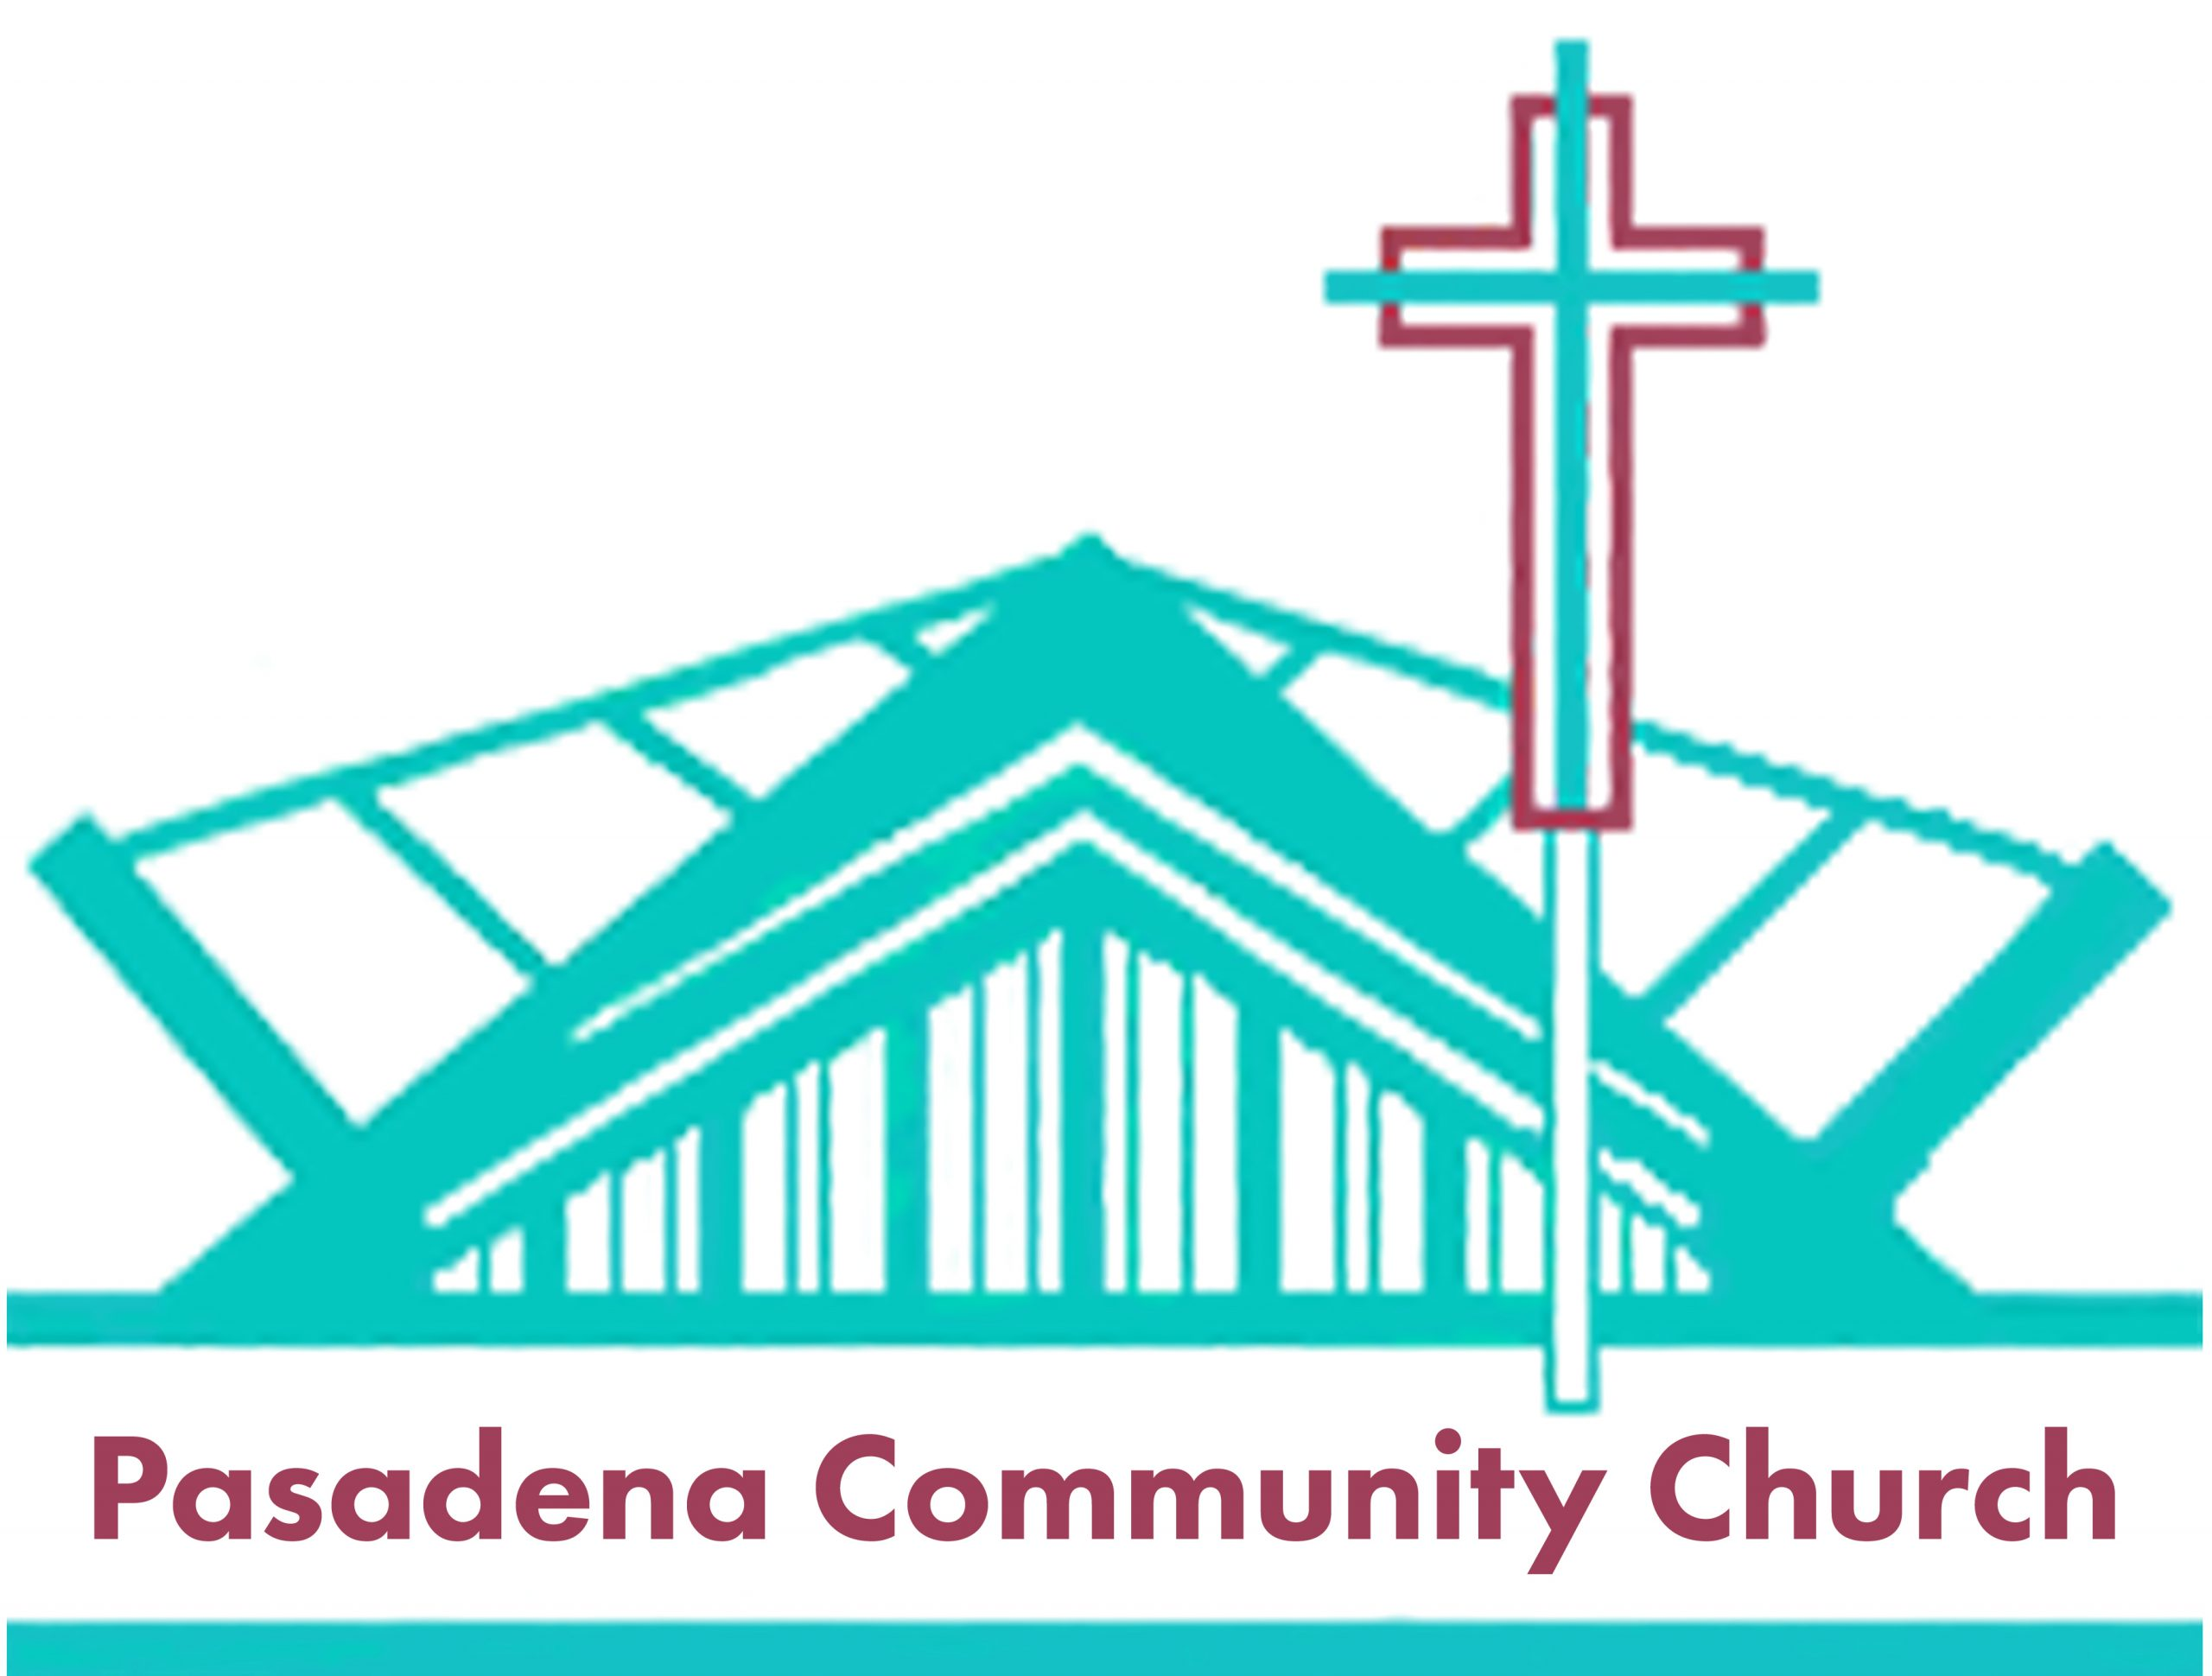 Pasadena Community Church